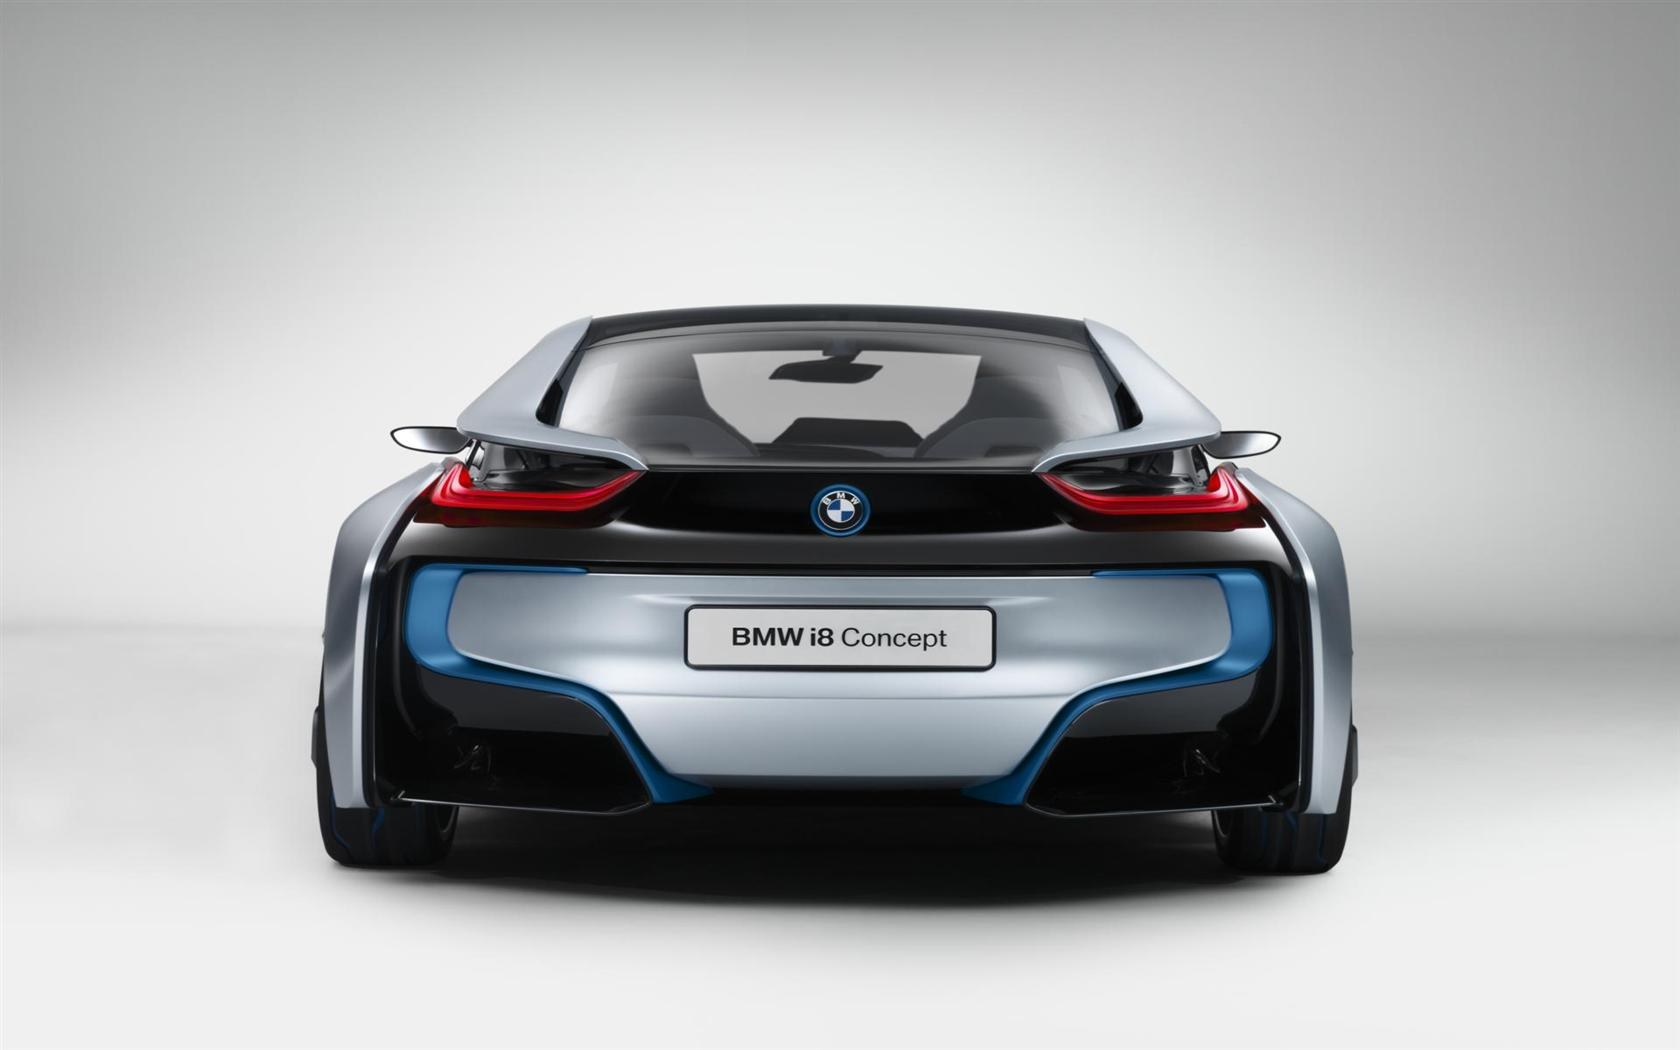 1680x1050 - BMW i3 Concept Wallpapers 15